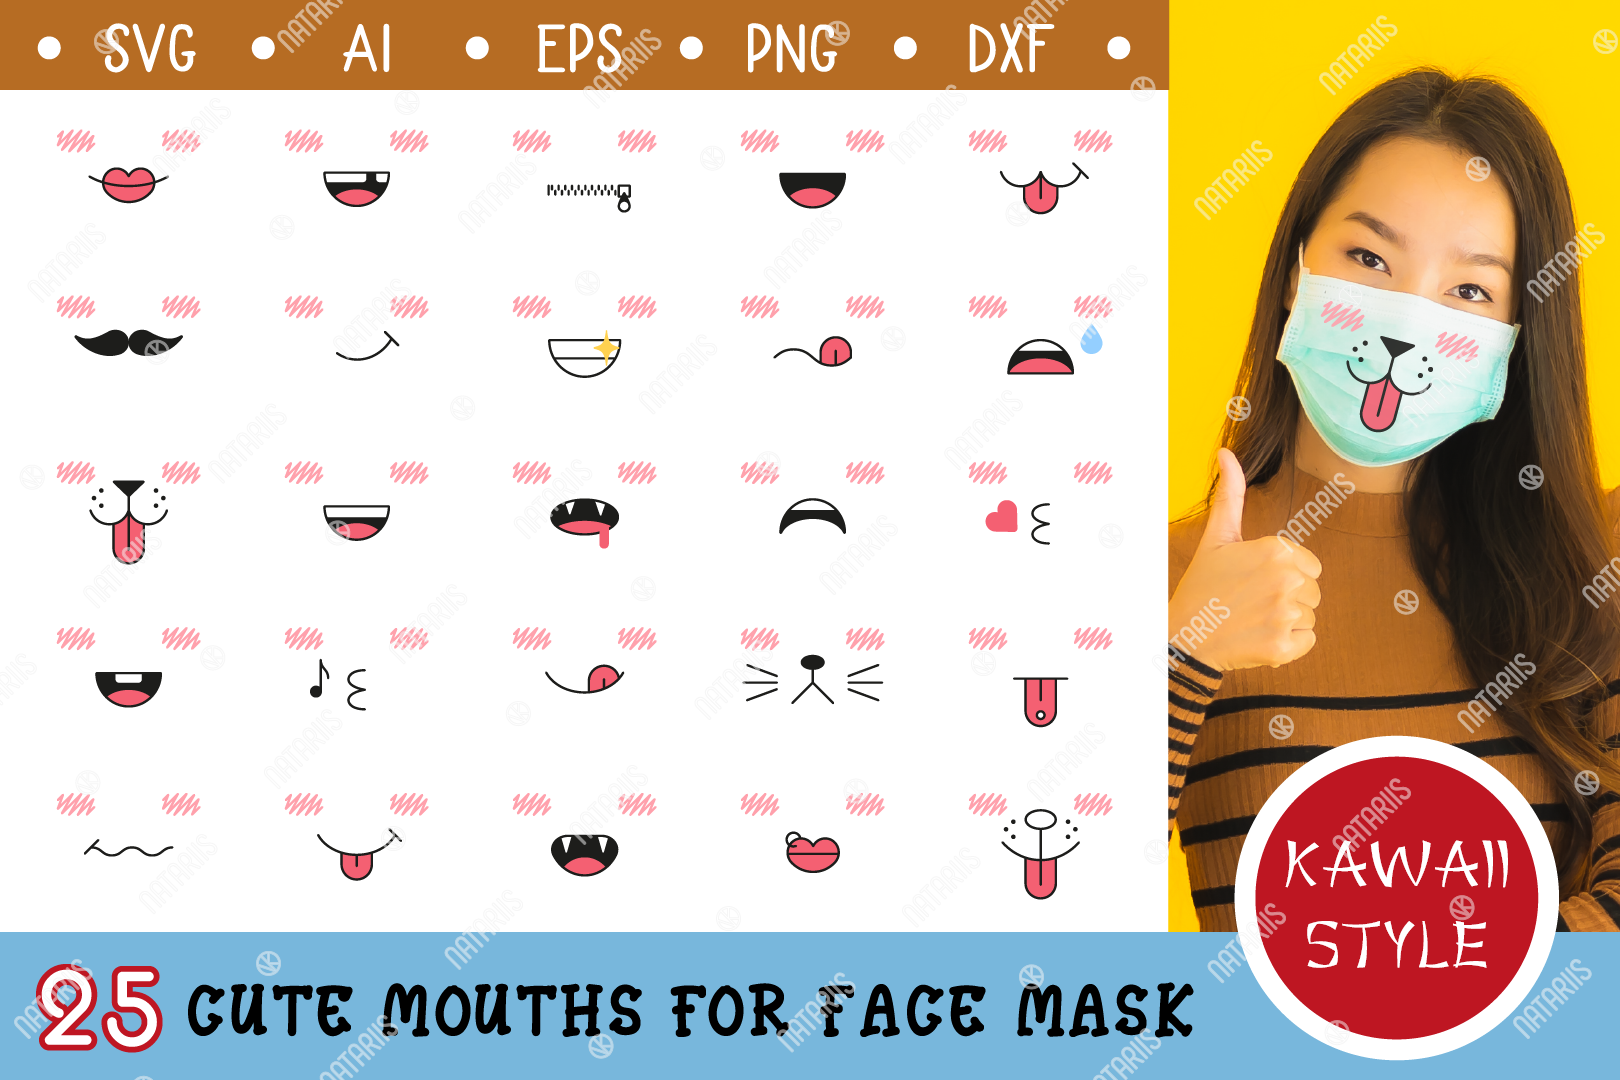 Download Free 25 Cute Mouths For Medical Face Mask Graphic By Natariis Studio Creative Fabrica for Cricut Explore, Silhouette and other cutting machines.